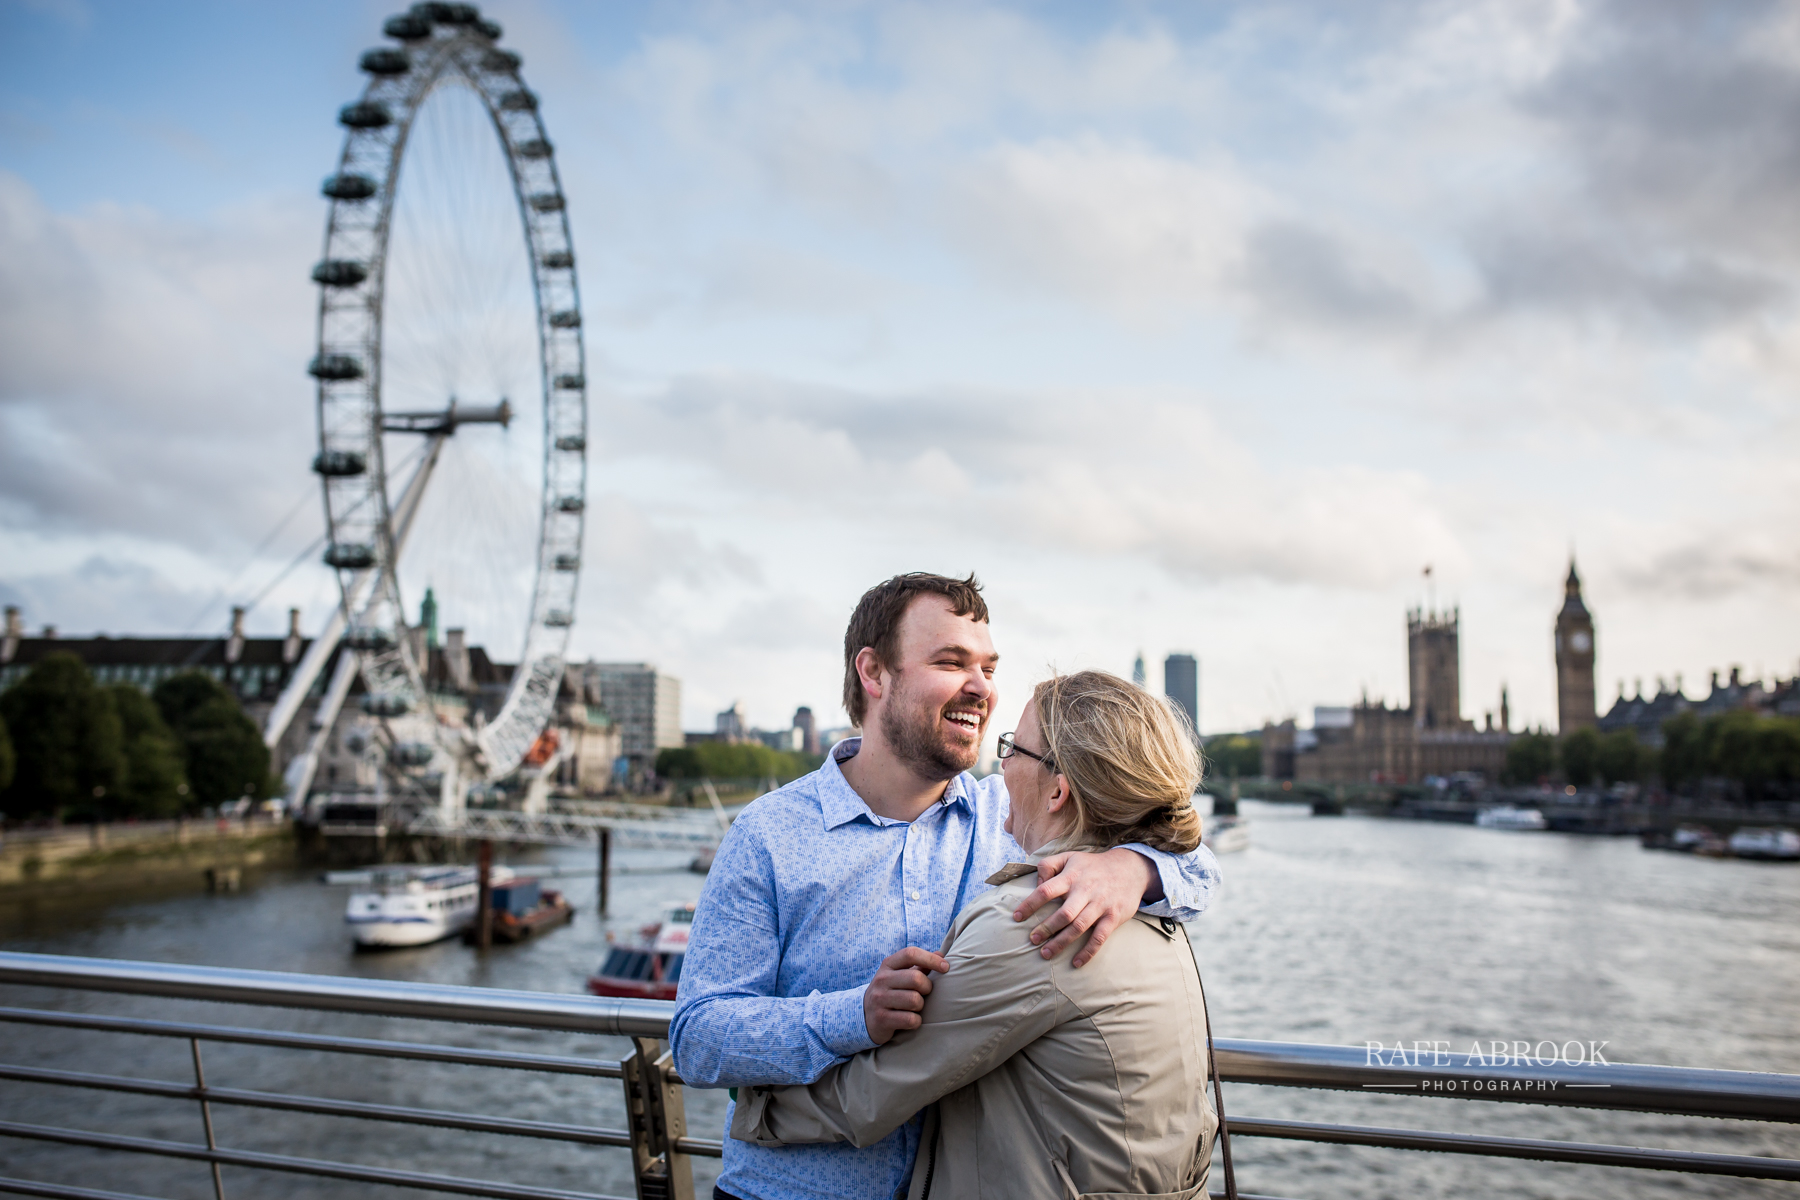 wedding photographer hertfordshire rafe abrook photography london city southbank engagement shoot-1023.jpg